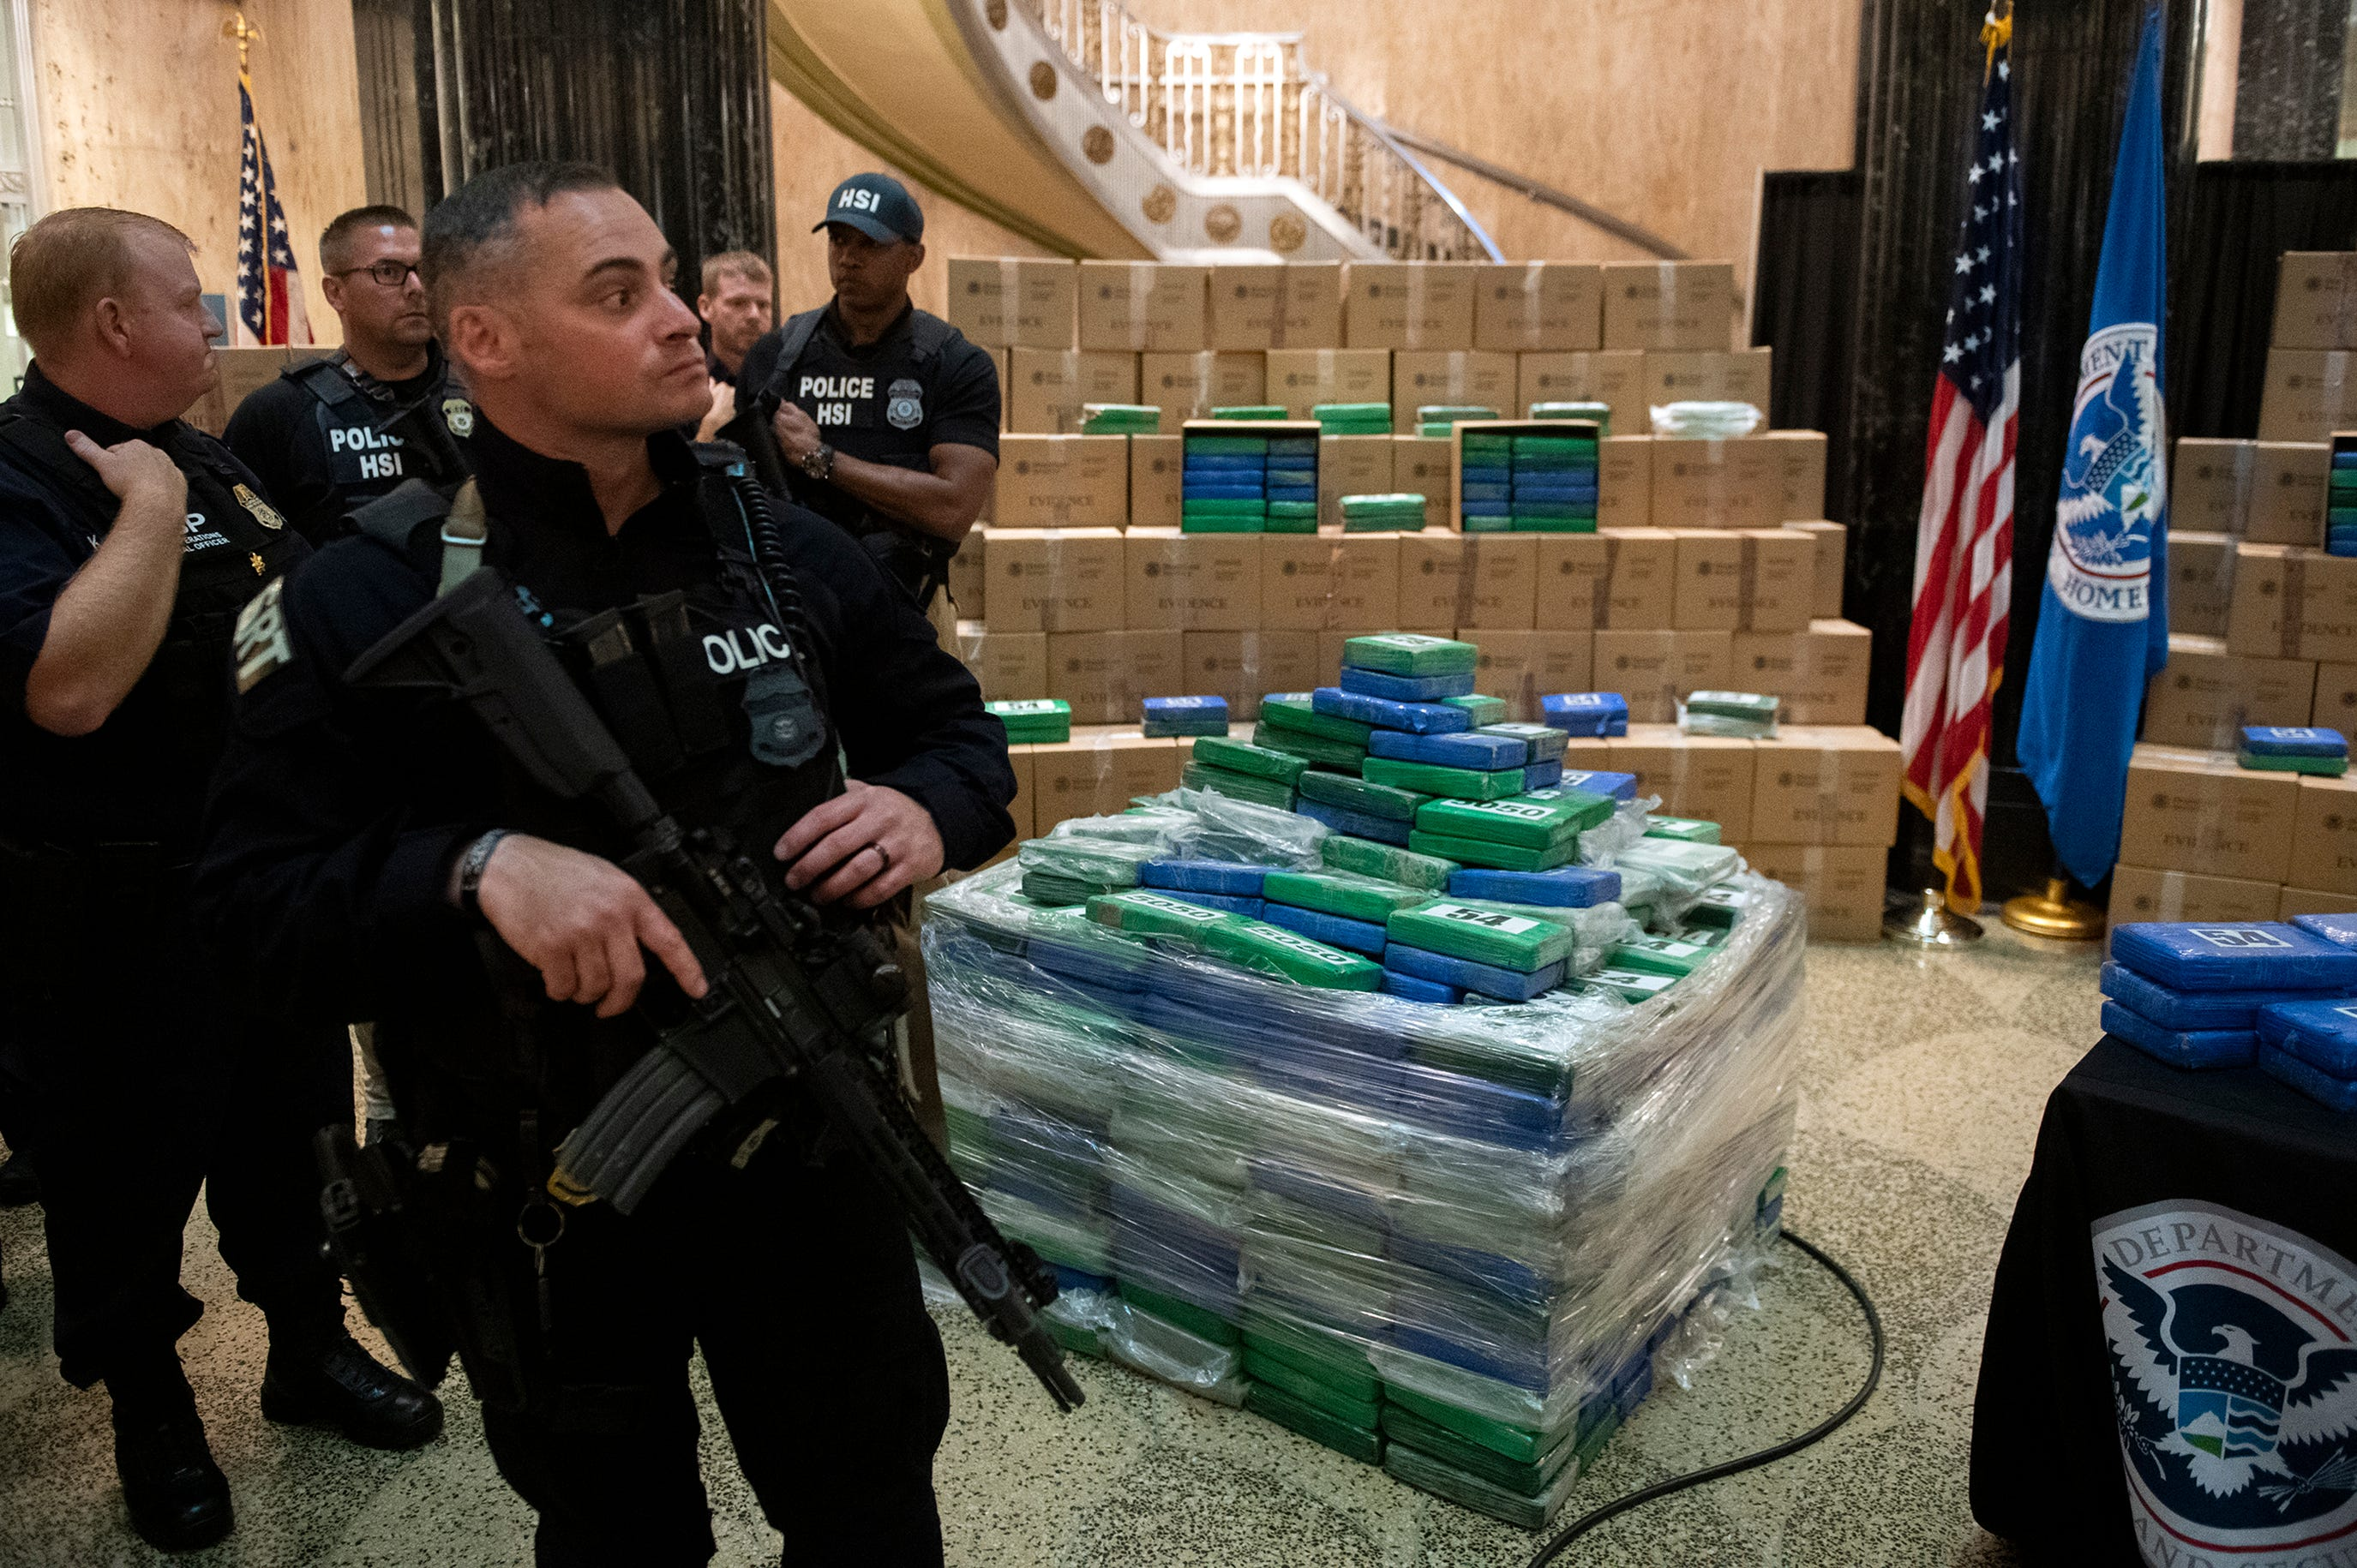 Watch: Philly cocaine seizure now up to 17 5 tons, $1 1 billion, officials  say